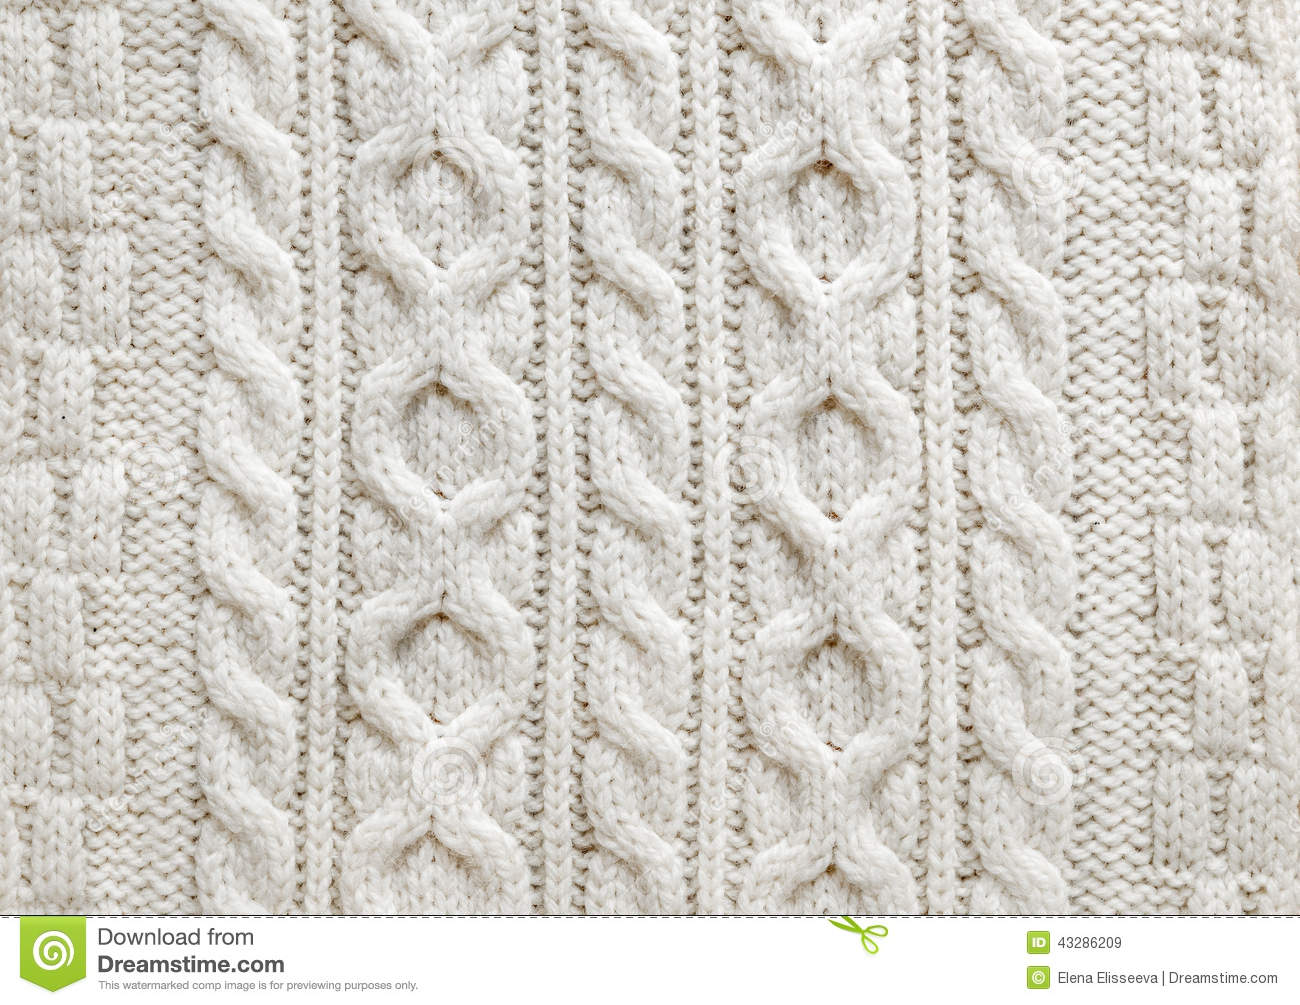 Knitting Cable Sweater - Long Sweater Jacket